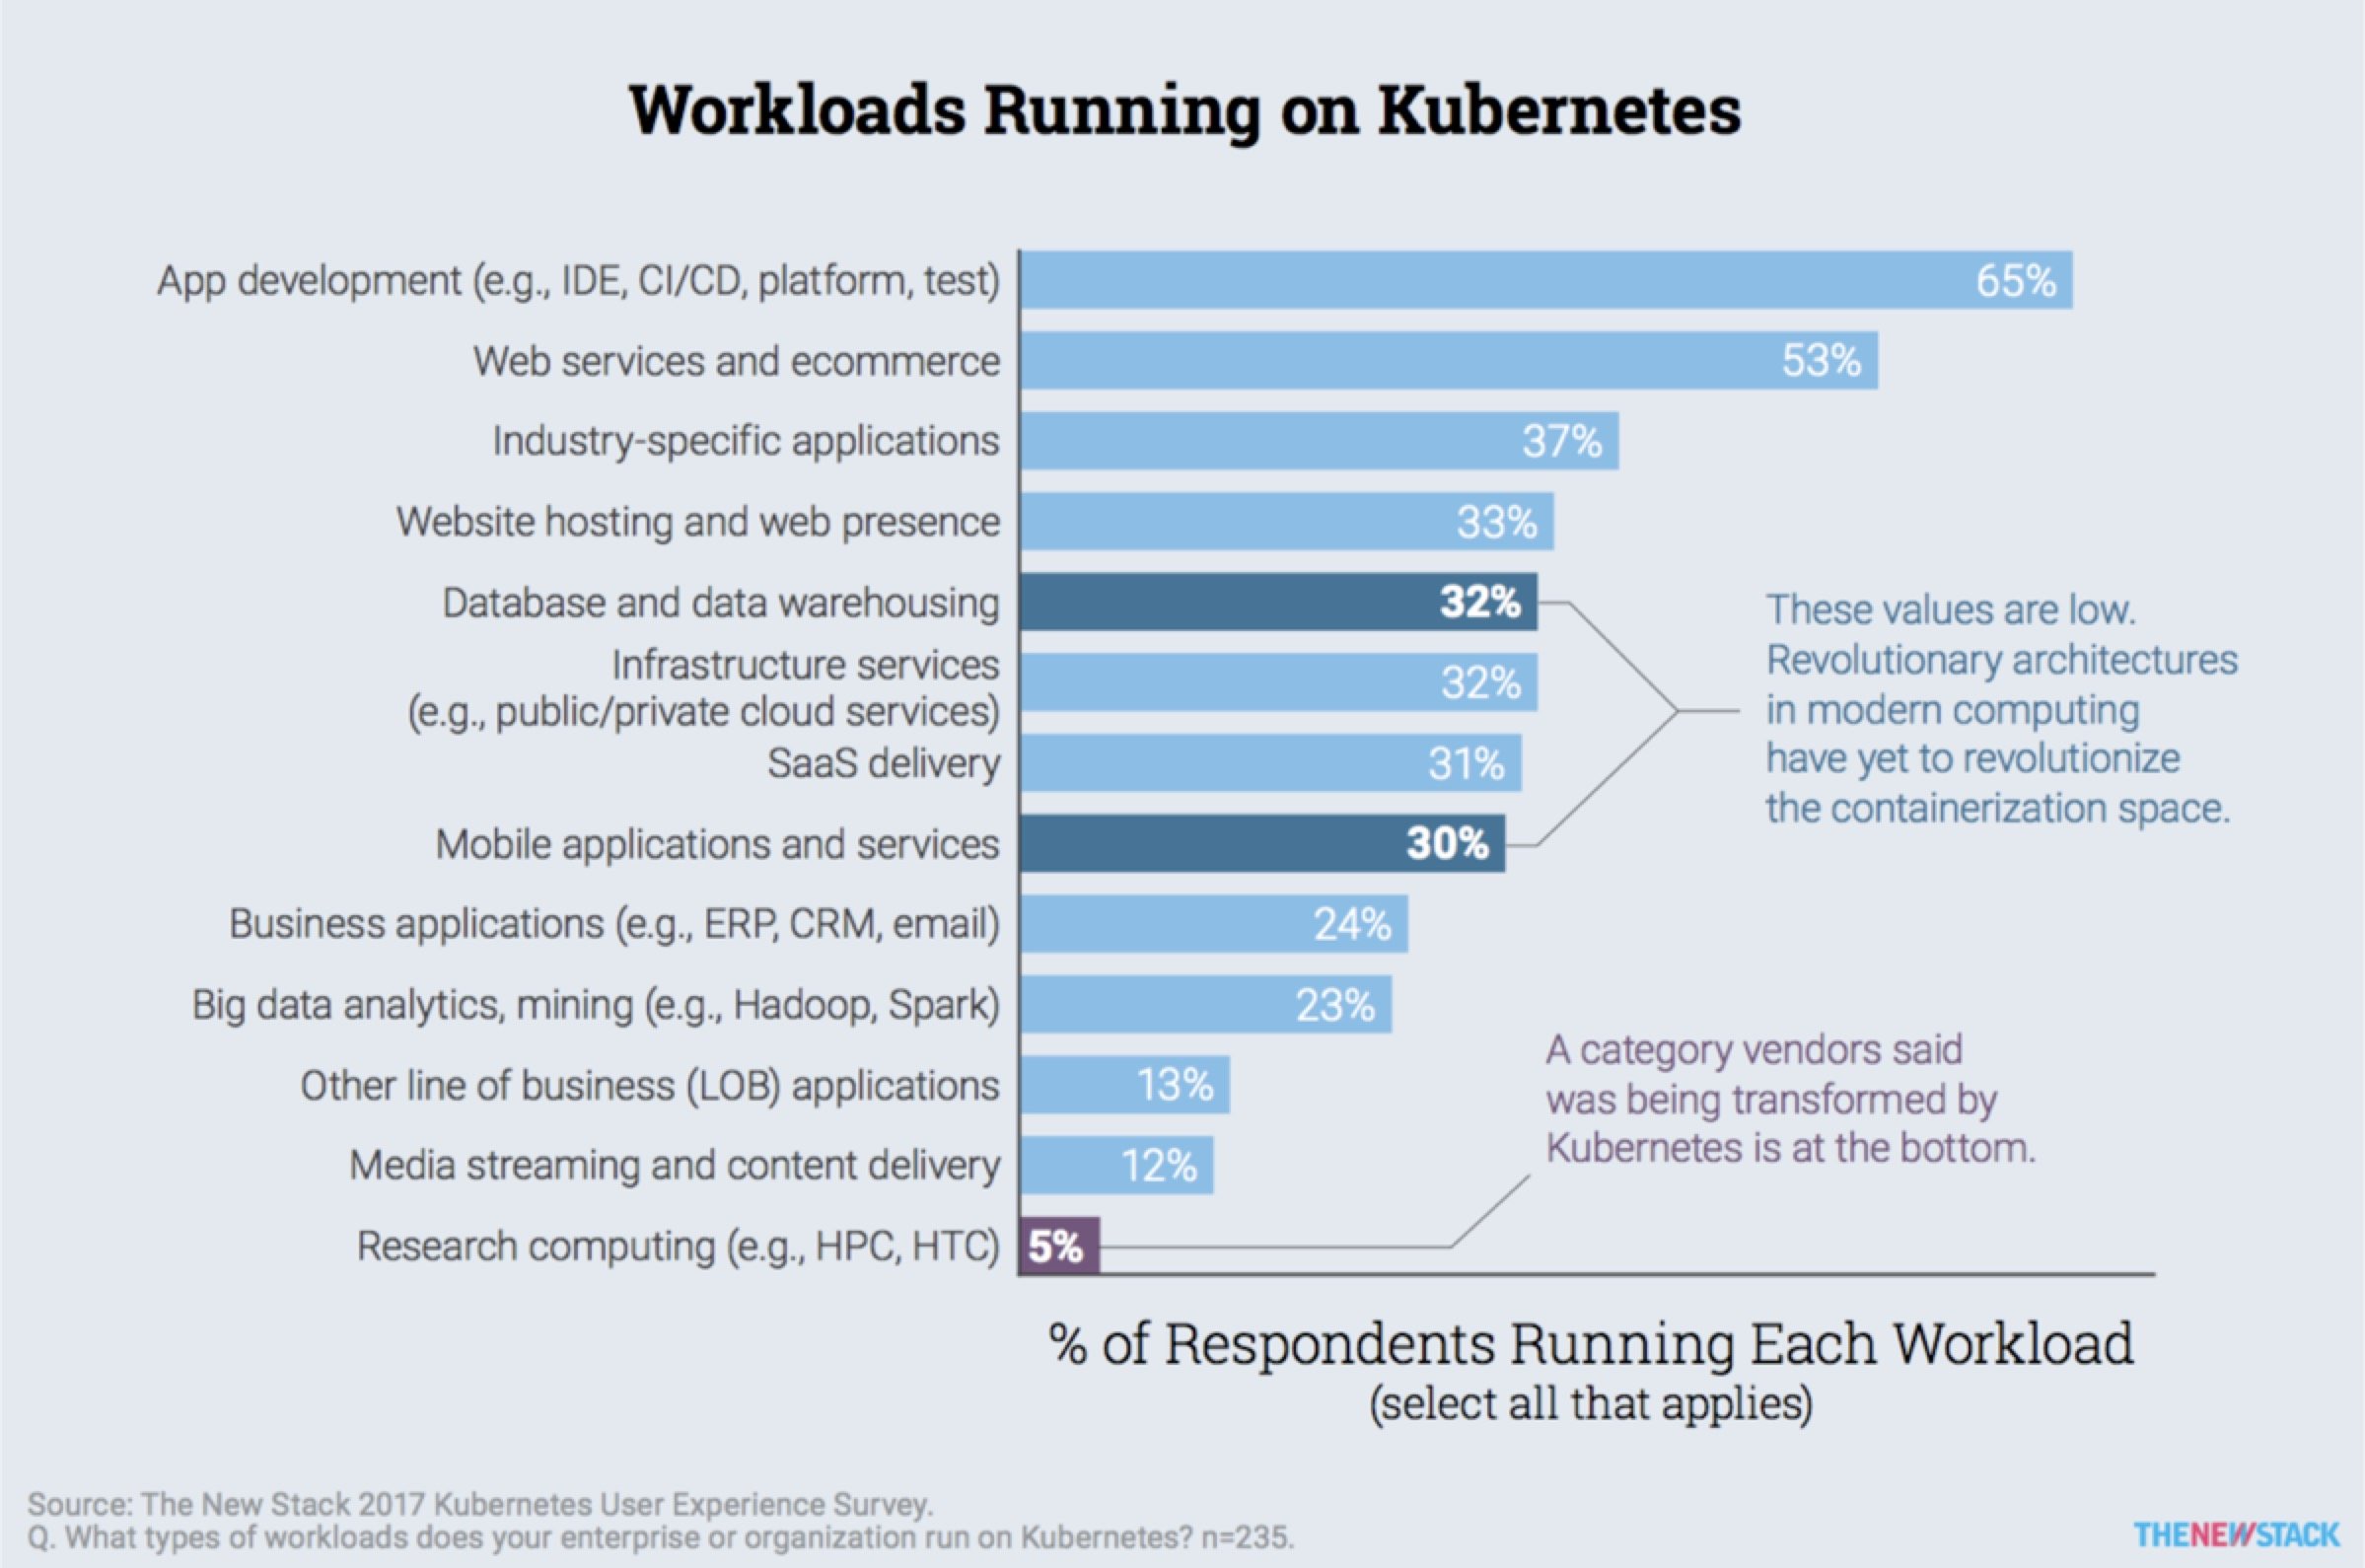 Workloads running on Kubernetes